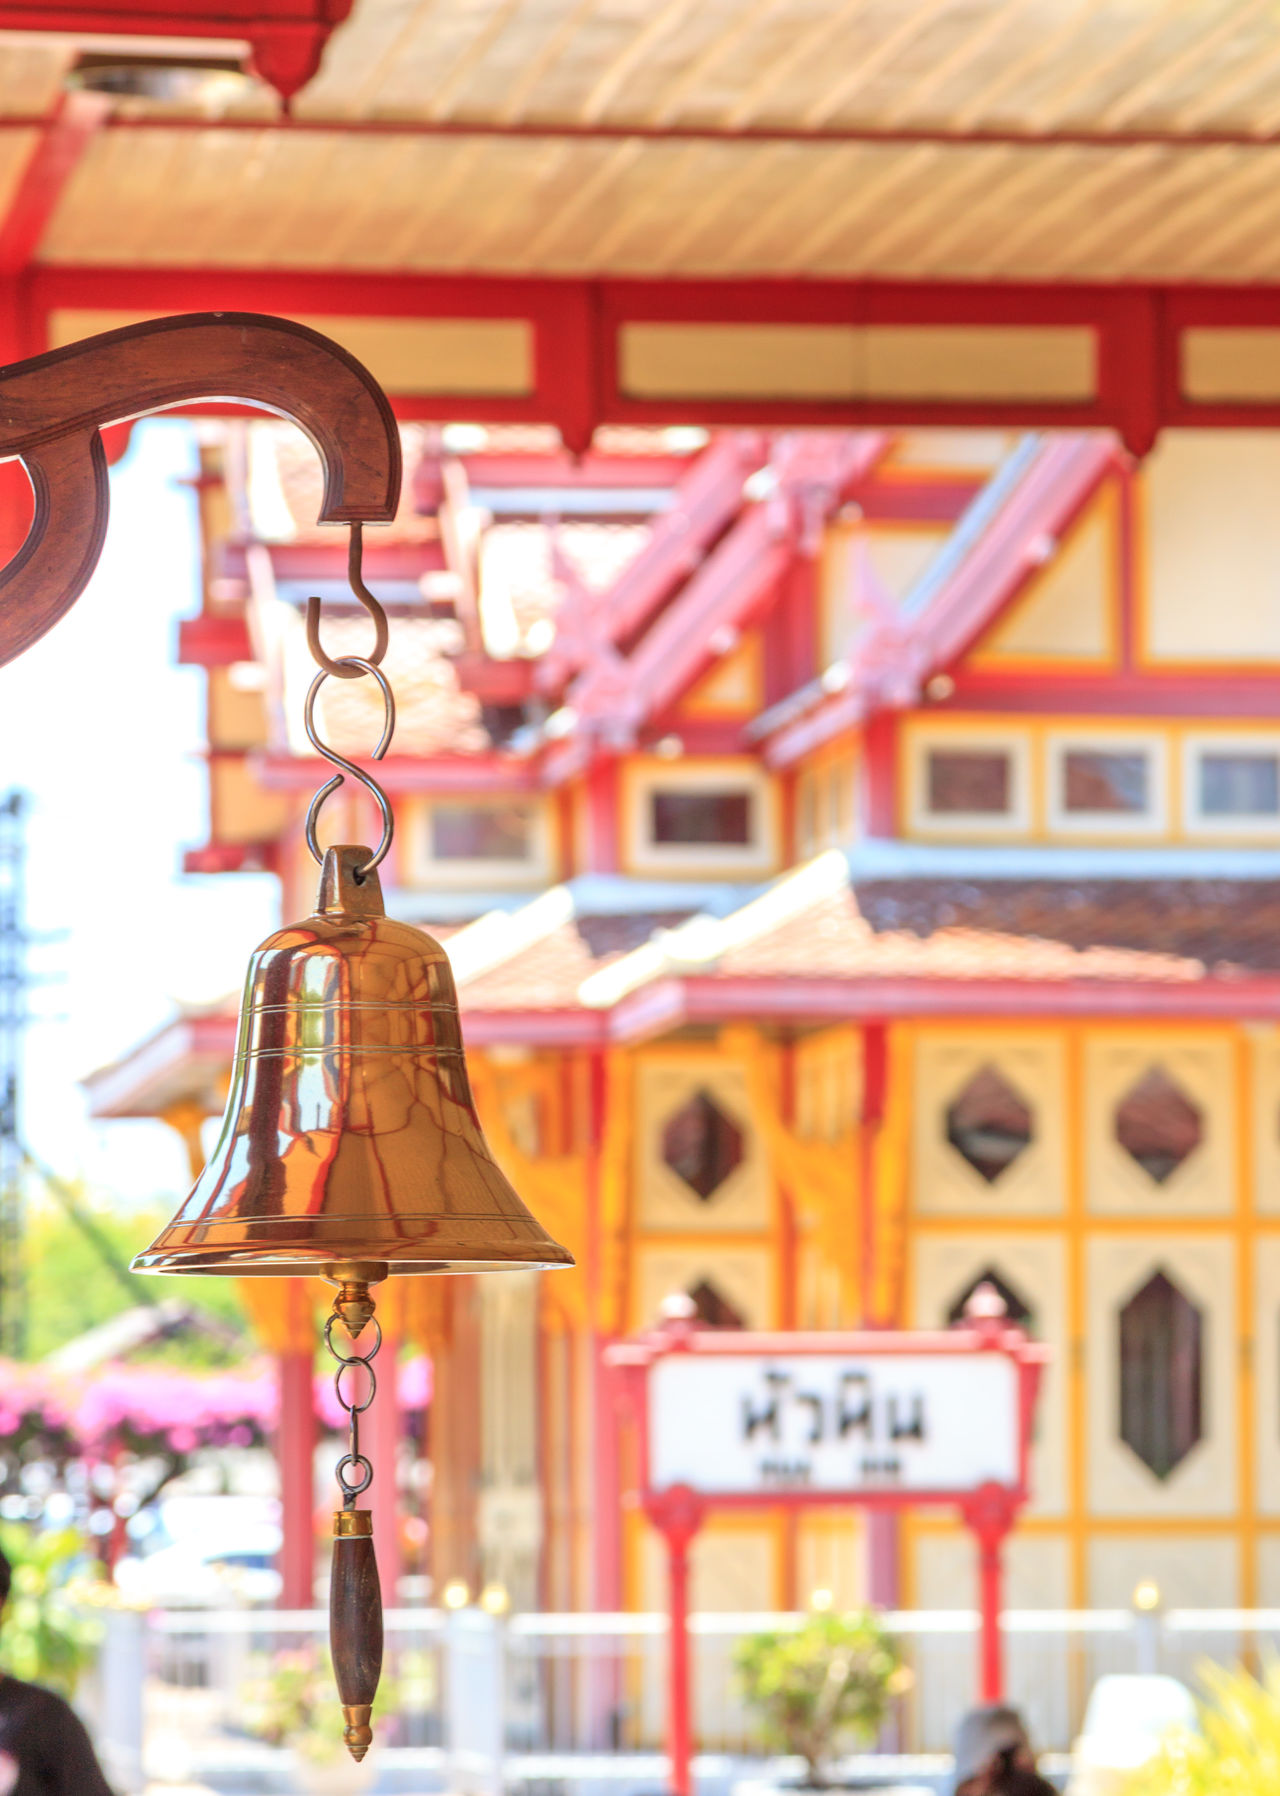 Hua Hin train station's bell and Thai flag Arrival Bell Built Structure City City Life Close-up Commuter Country Countryside Day Focus On Foreground Hanging Journey No People Outdoors Railway Station Railway Station Platform Ring Station Thai Culture Thailand Train Station Travel